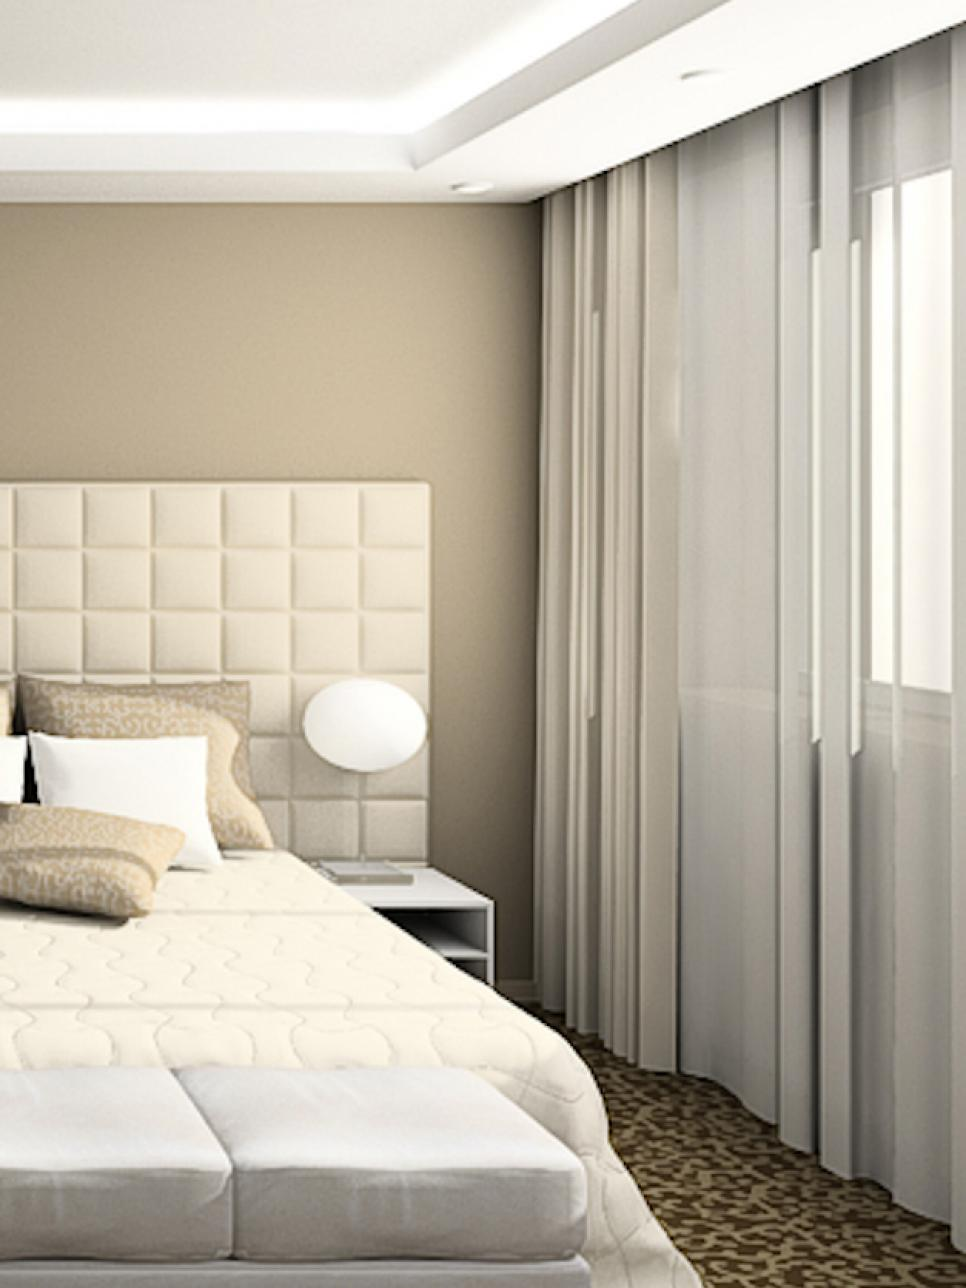 curtains for bedroom 7 beautiful window treatments for bedrooms | hgtv HGFOIRY